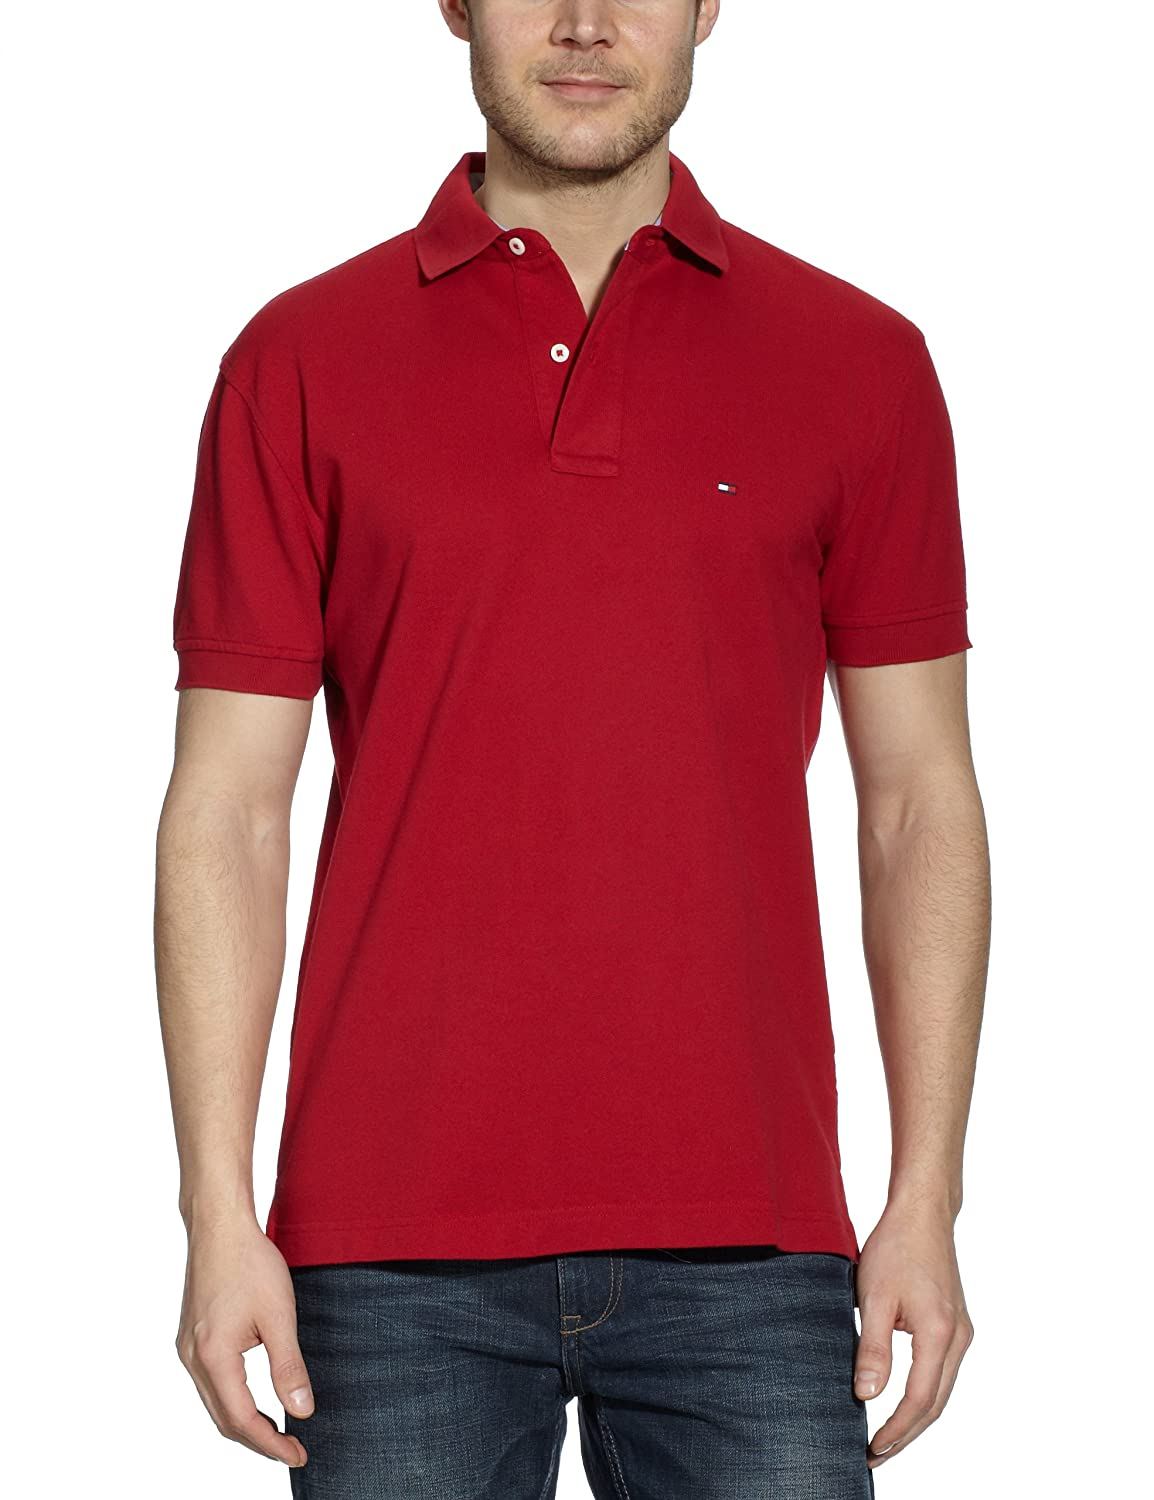 Tommy Hilfiger Polo Shirts Small Core Summer Red At Amazon Mens